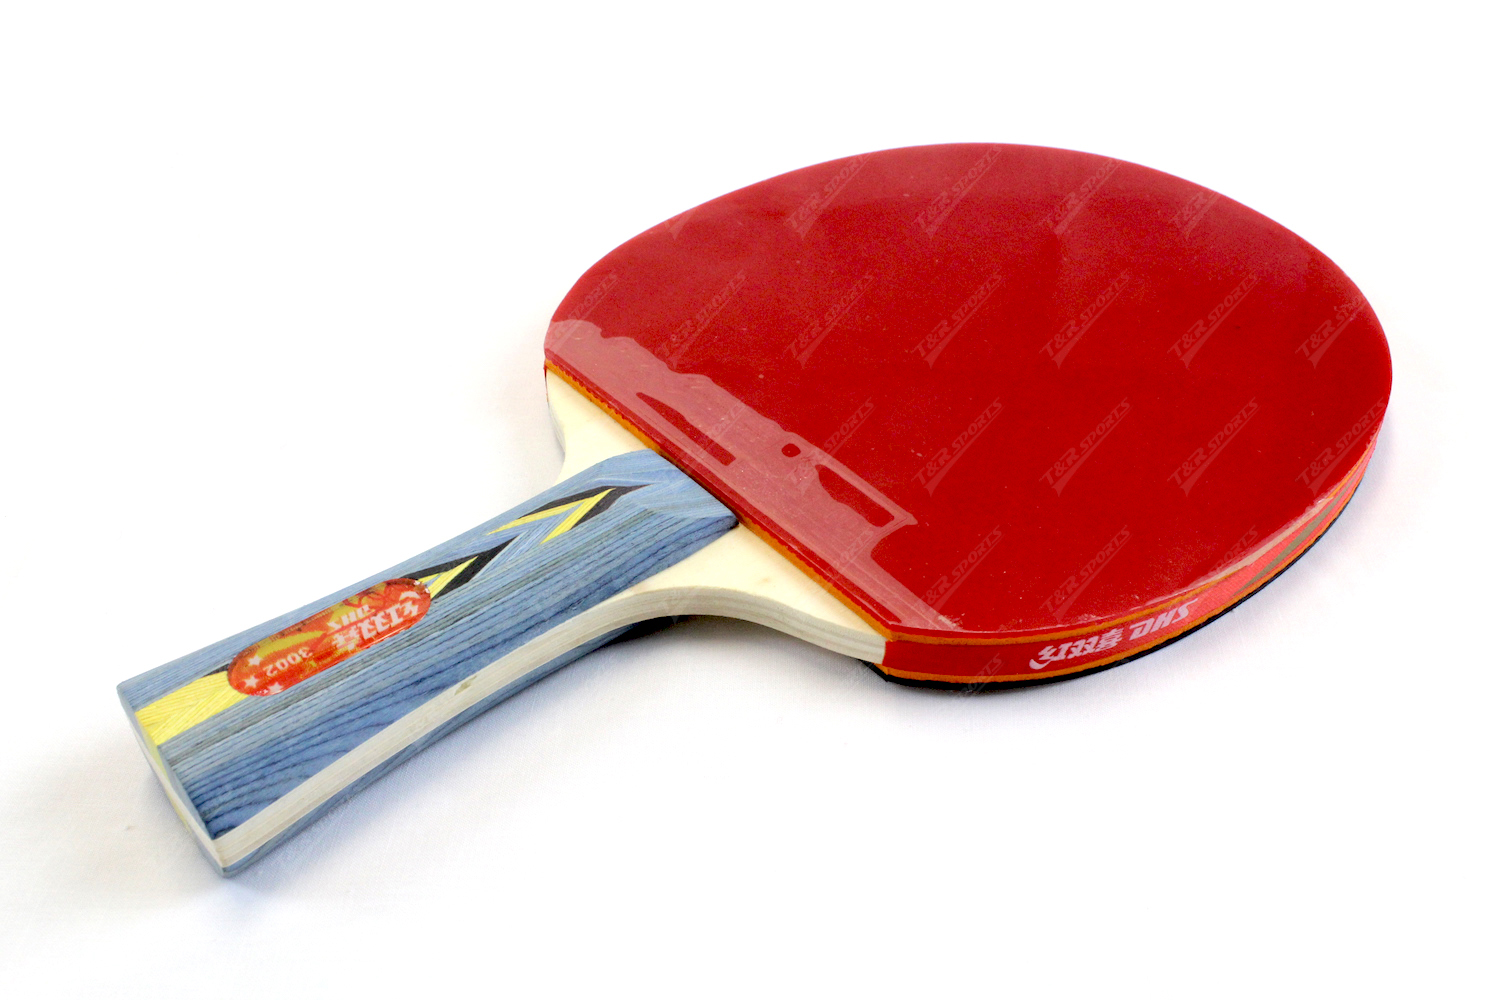 Table tennis racket png - For Detailed Descriptions And Specifications Please Scroll Down Please Be Advised That The Pool Table Shown In The Picture Is Not Included